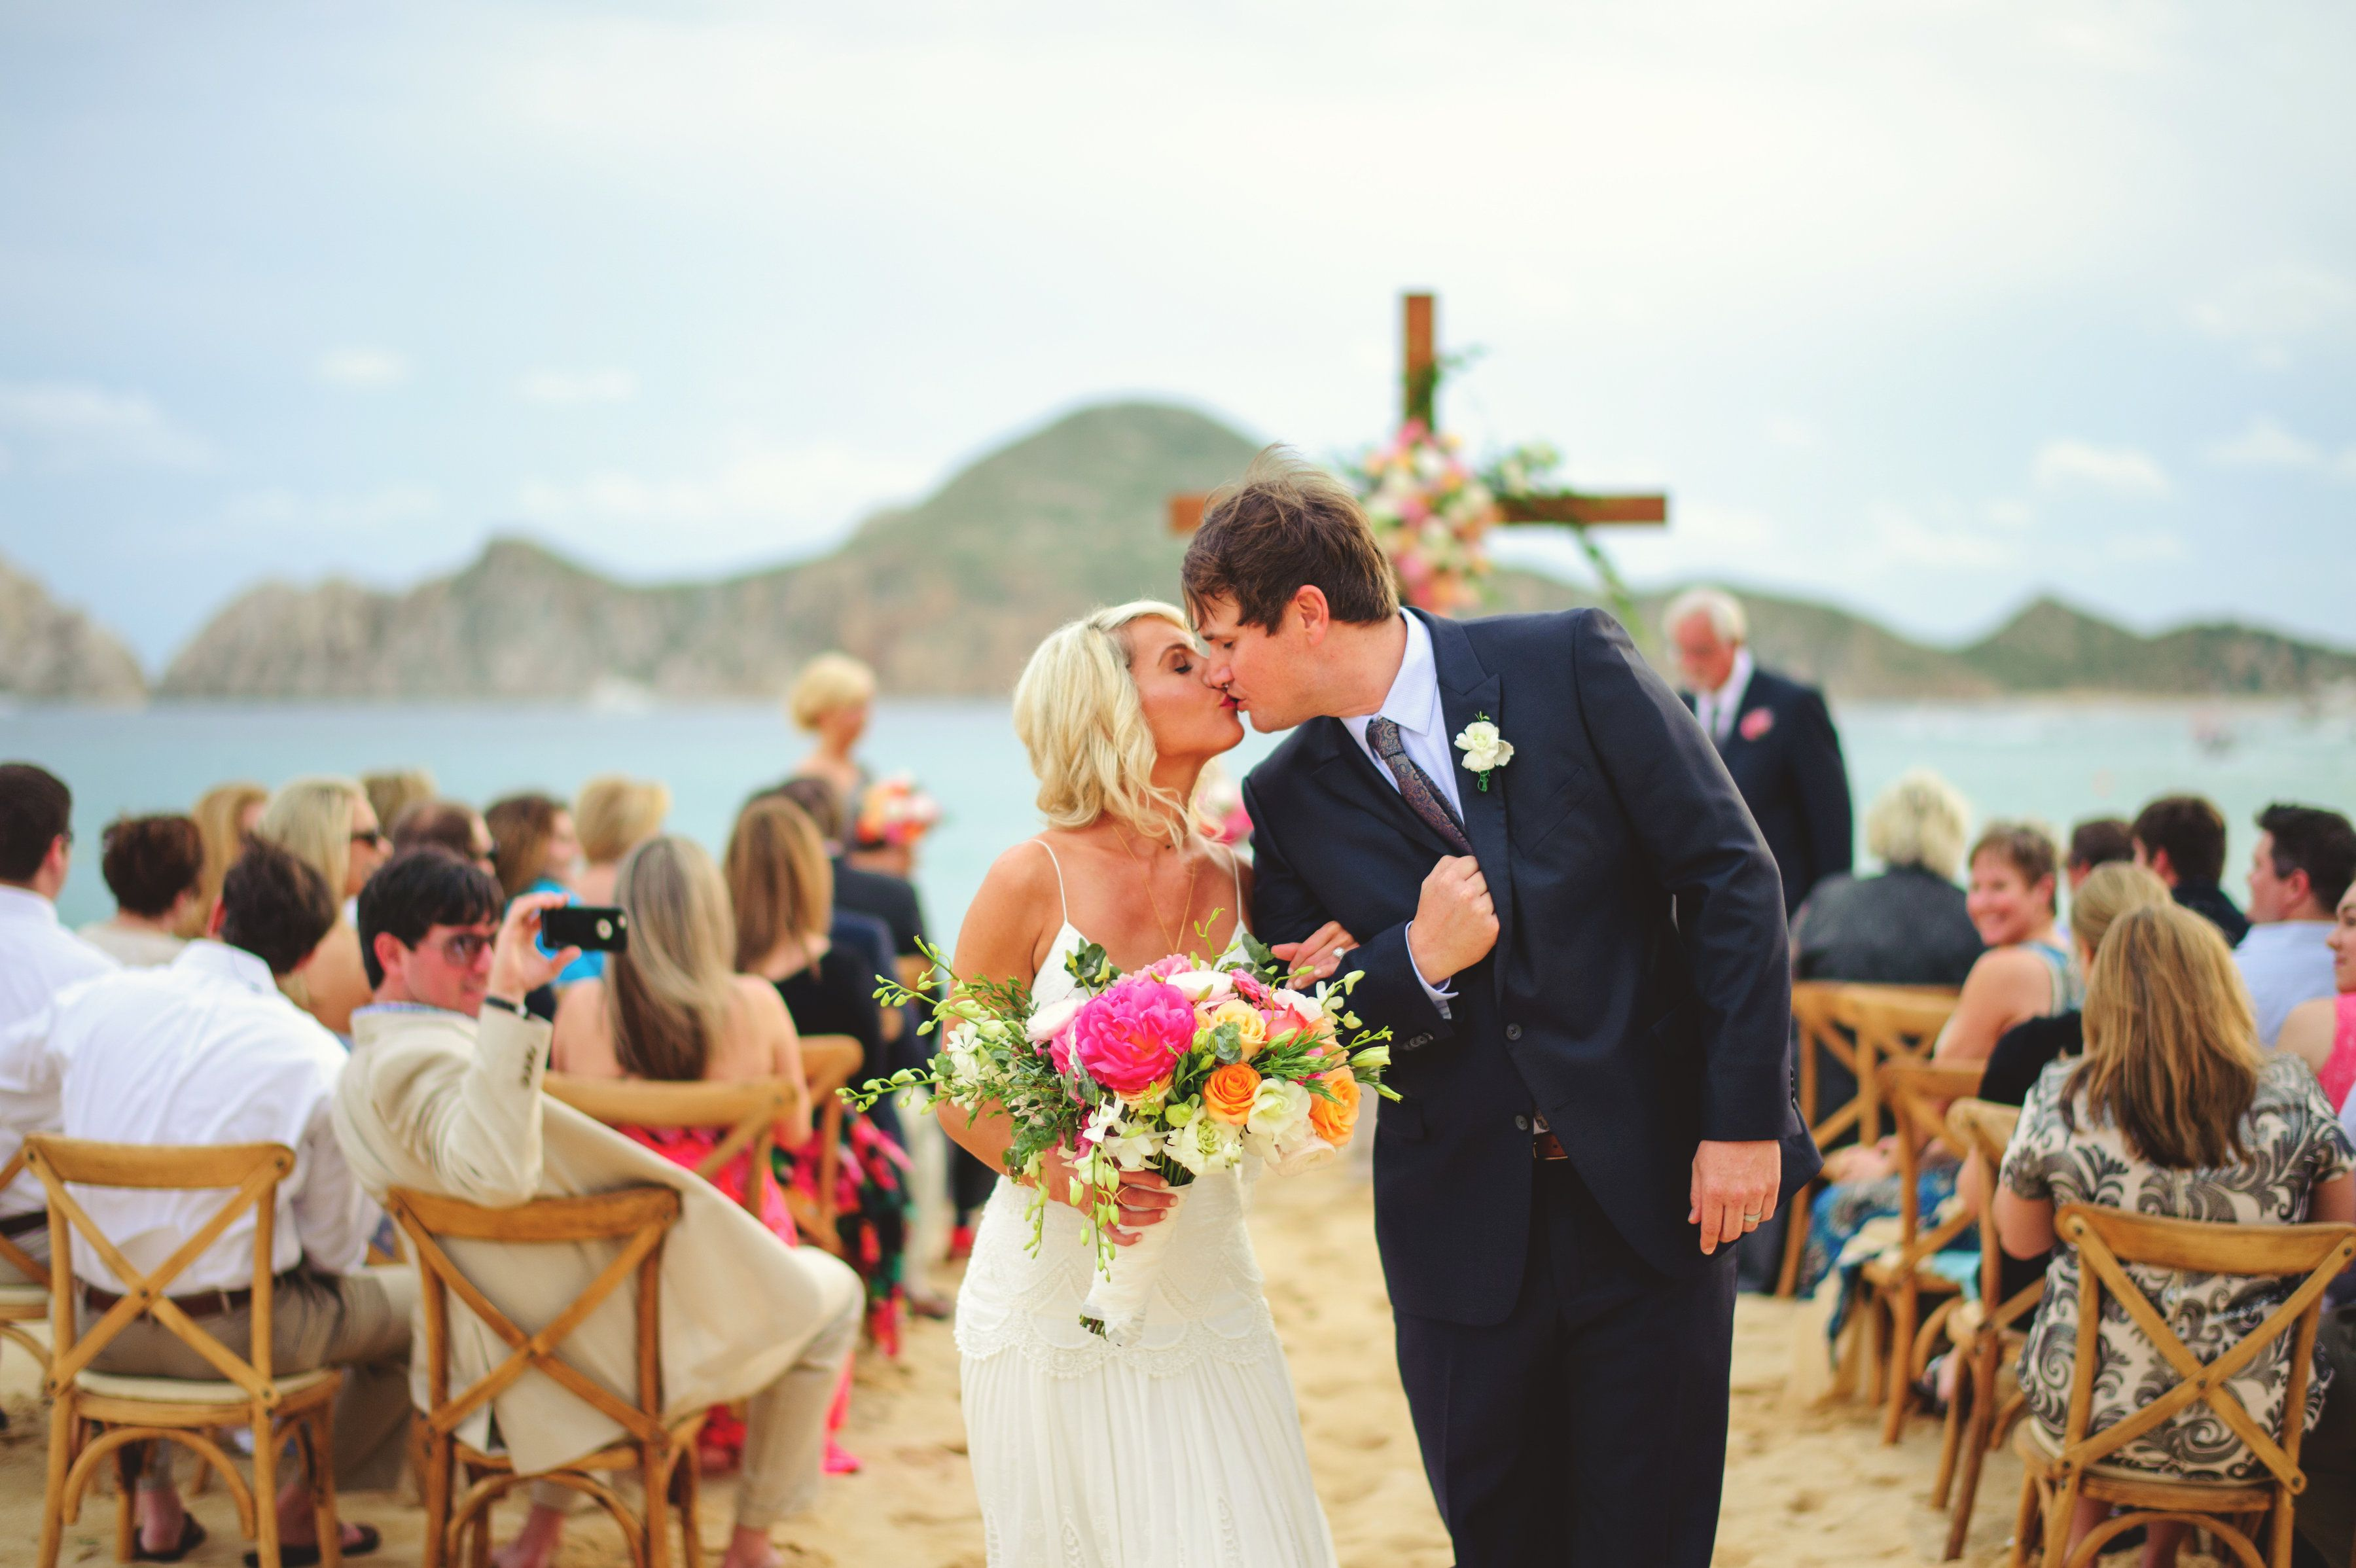 Just Married Newlyweds in Cabo San Lucas Ceremony Design by Jesse Wolff